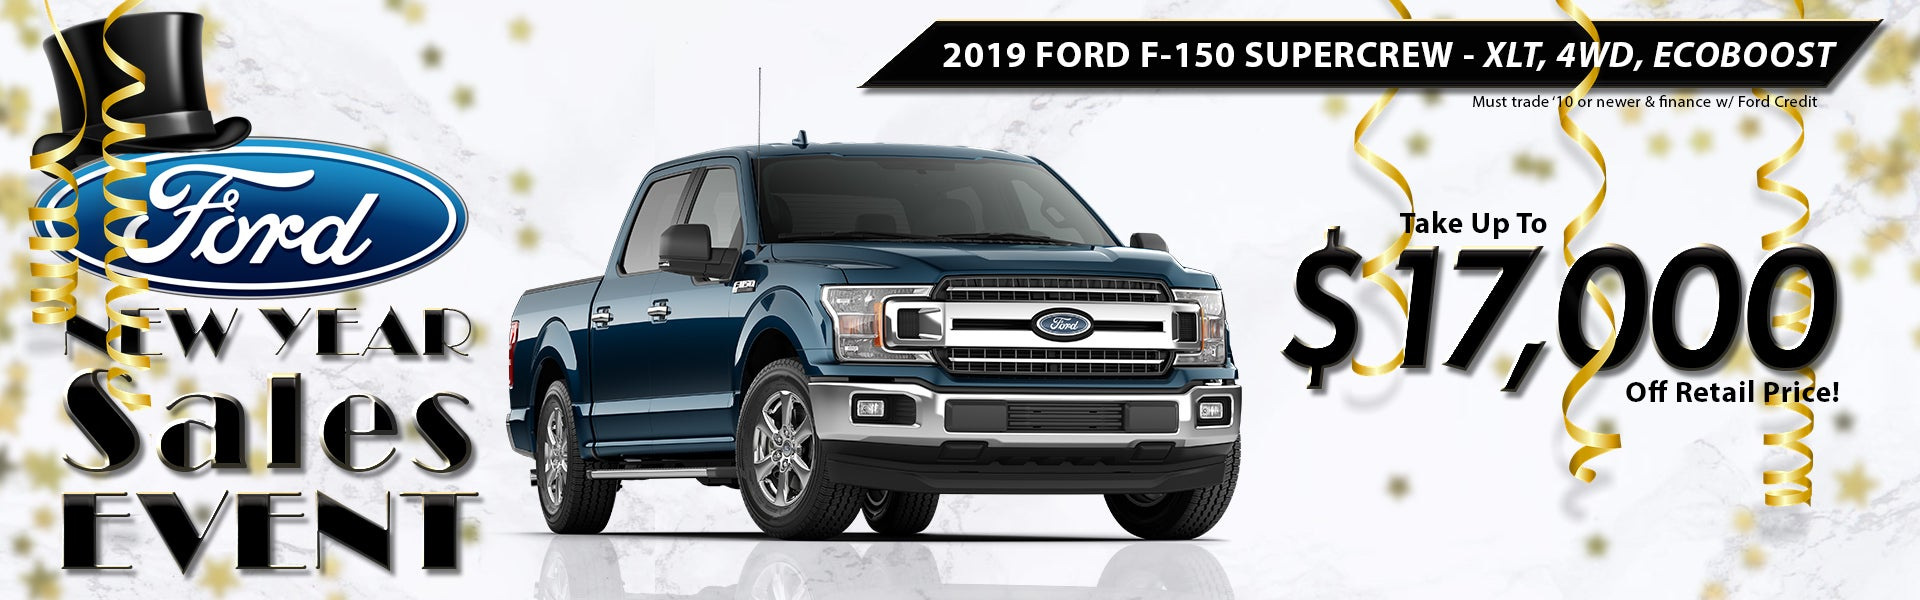 Ford Dealerships In Mississippi >> Ford Dealer In Apex Nc Used Cars Apex Crossroads Ford